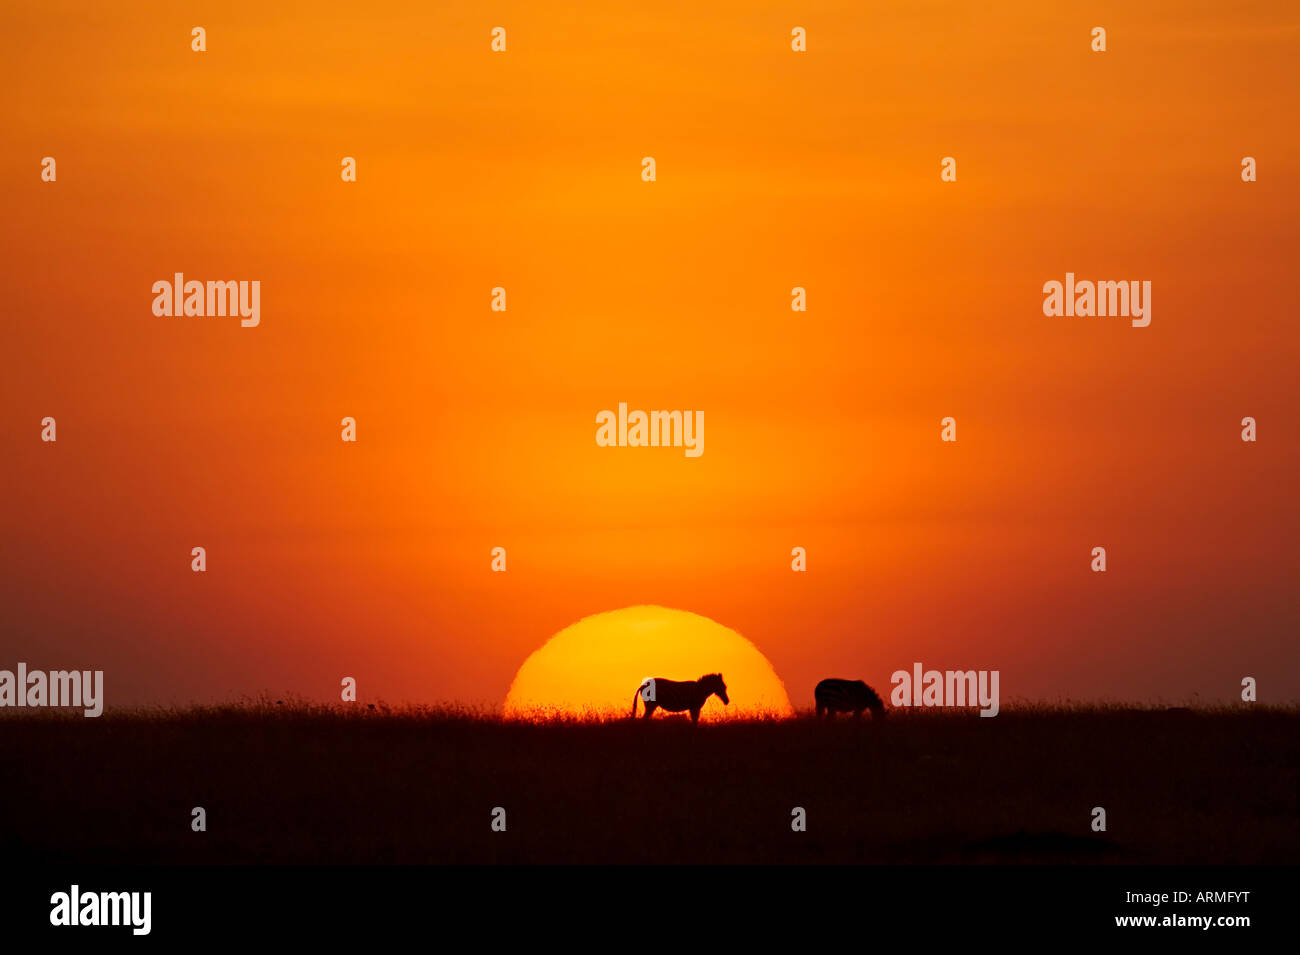 Sun setting behind a silhouetted common zebra, Masai Mara Game Reserve, Kenya, East Africa, Africa - Stock Image